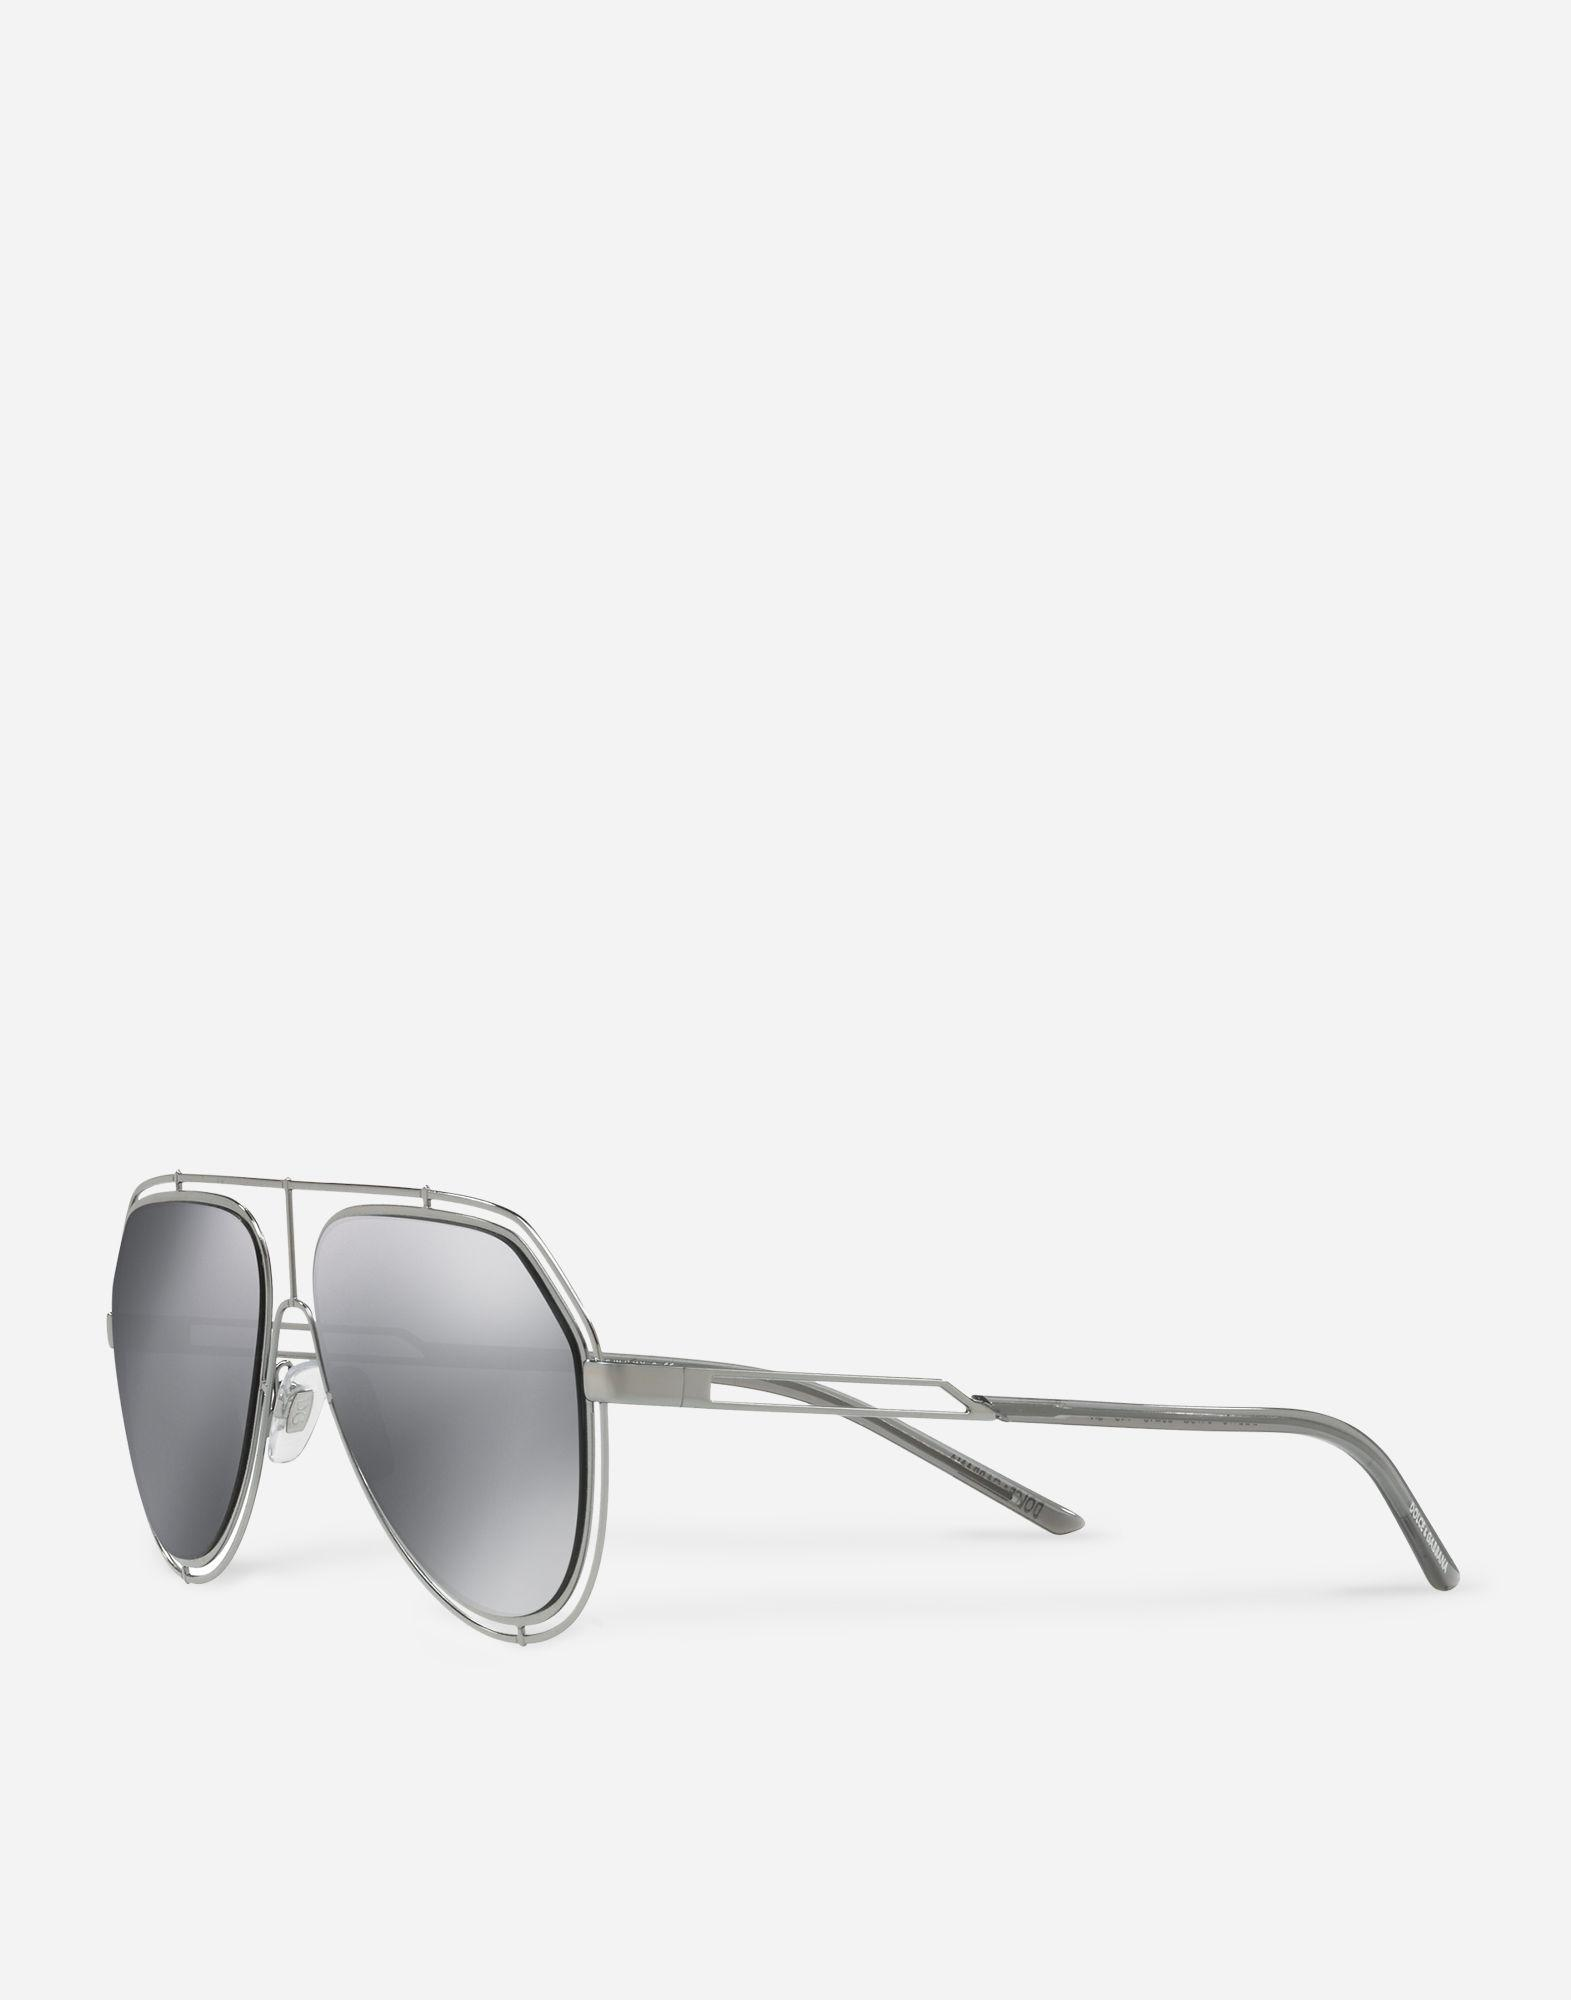 0140f3792ef Lyst - Dolce   Gabbana Aviator Sunglasses With Metal Rims in Metallic for  Men